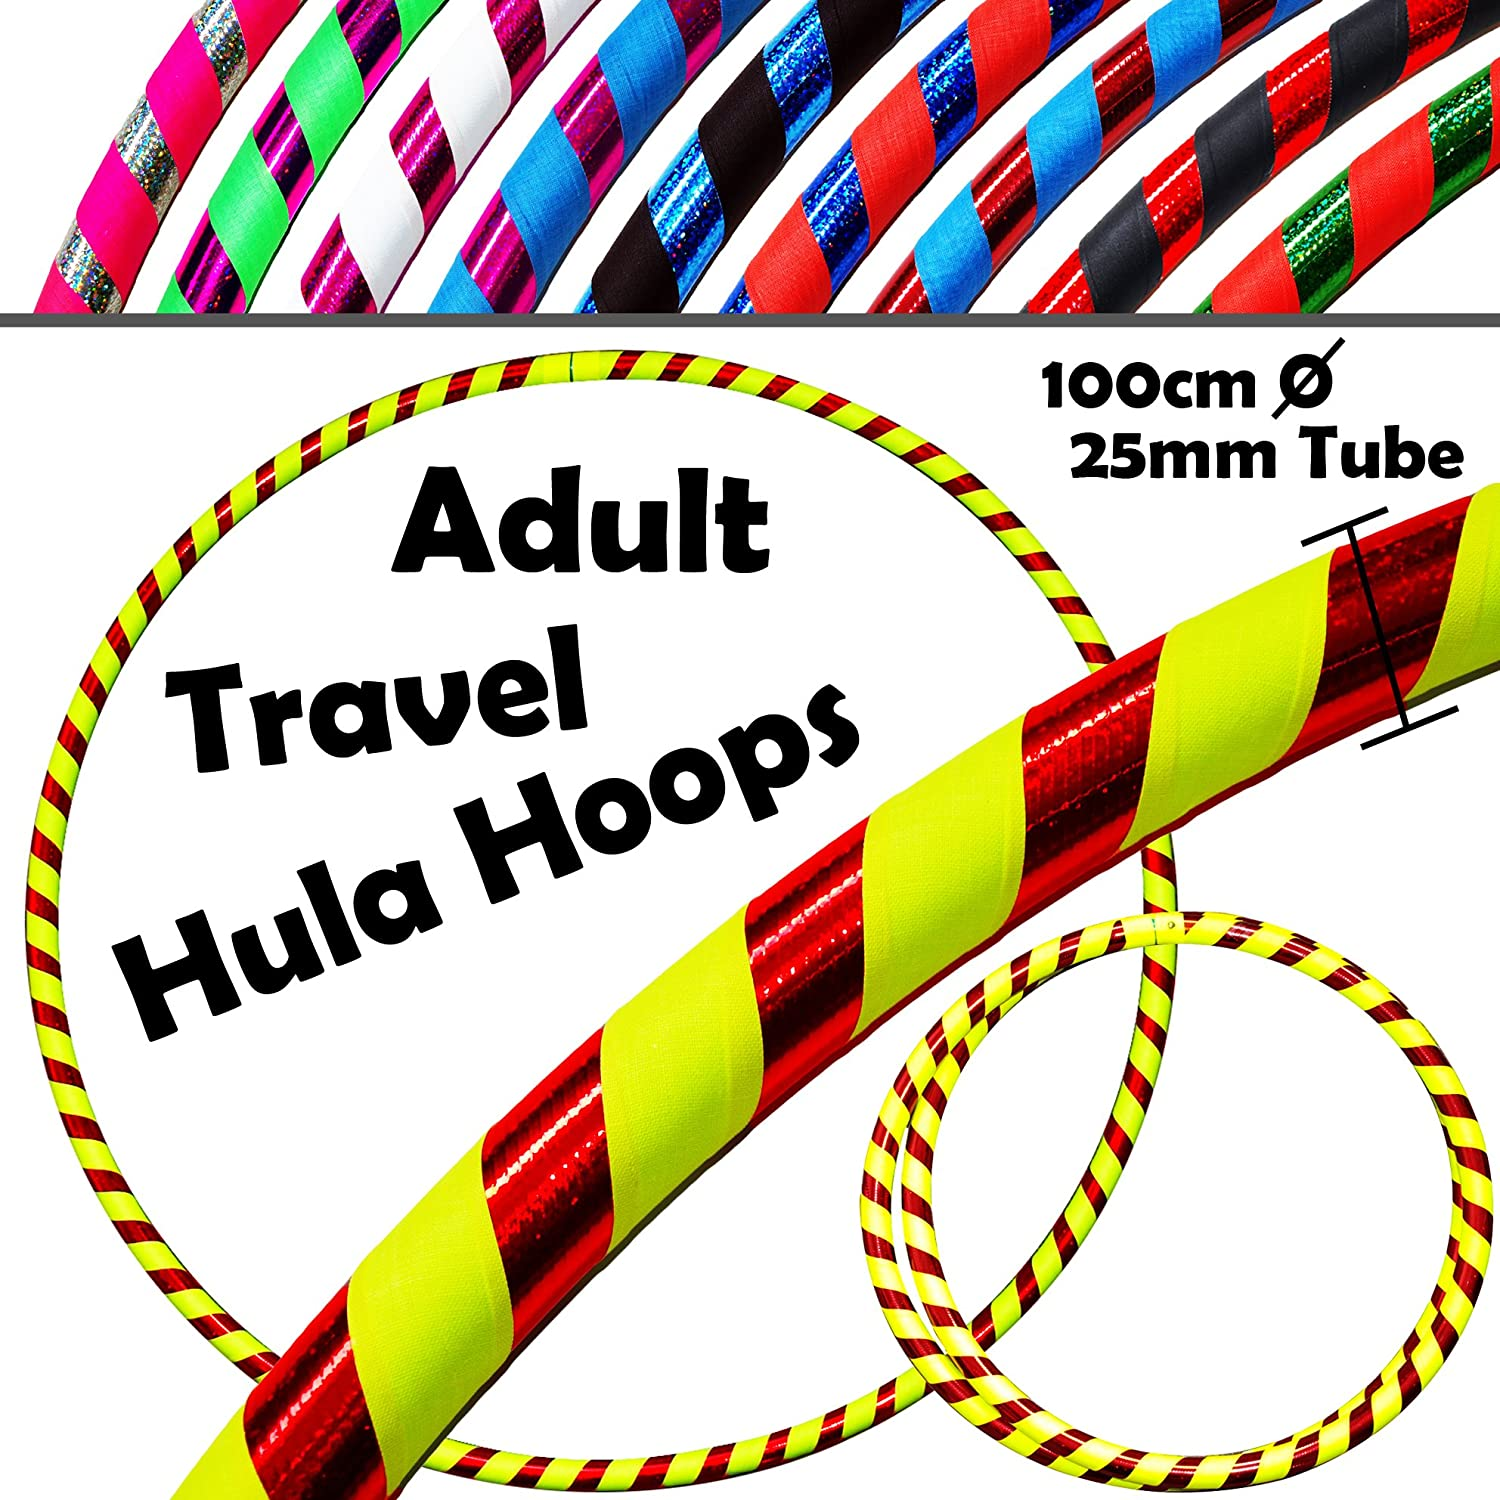 PRO Hula Hoops (Ultra-Grip/Glitter Deco) Weighted TRAVEL Hula Hoop (100cm/39') Hula Hoops For Exercise, Dance & Fitness! (640g) NO Instructions Needed - Same Day Dispatch! Flames N Games